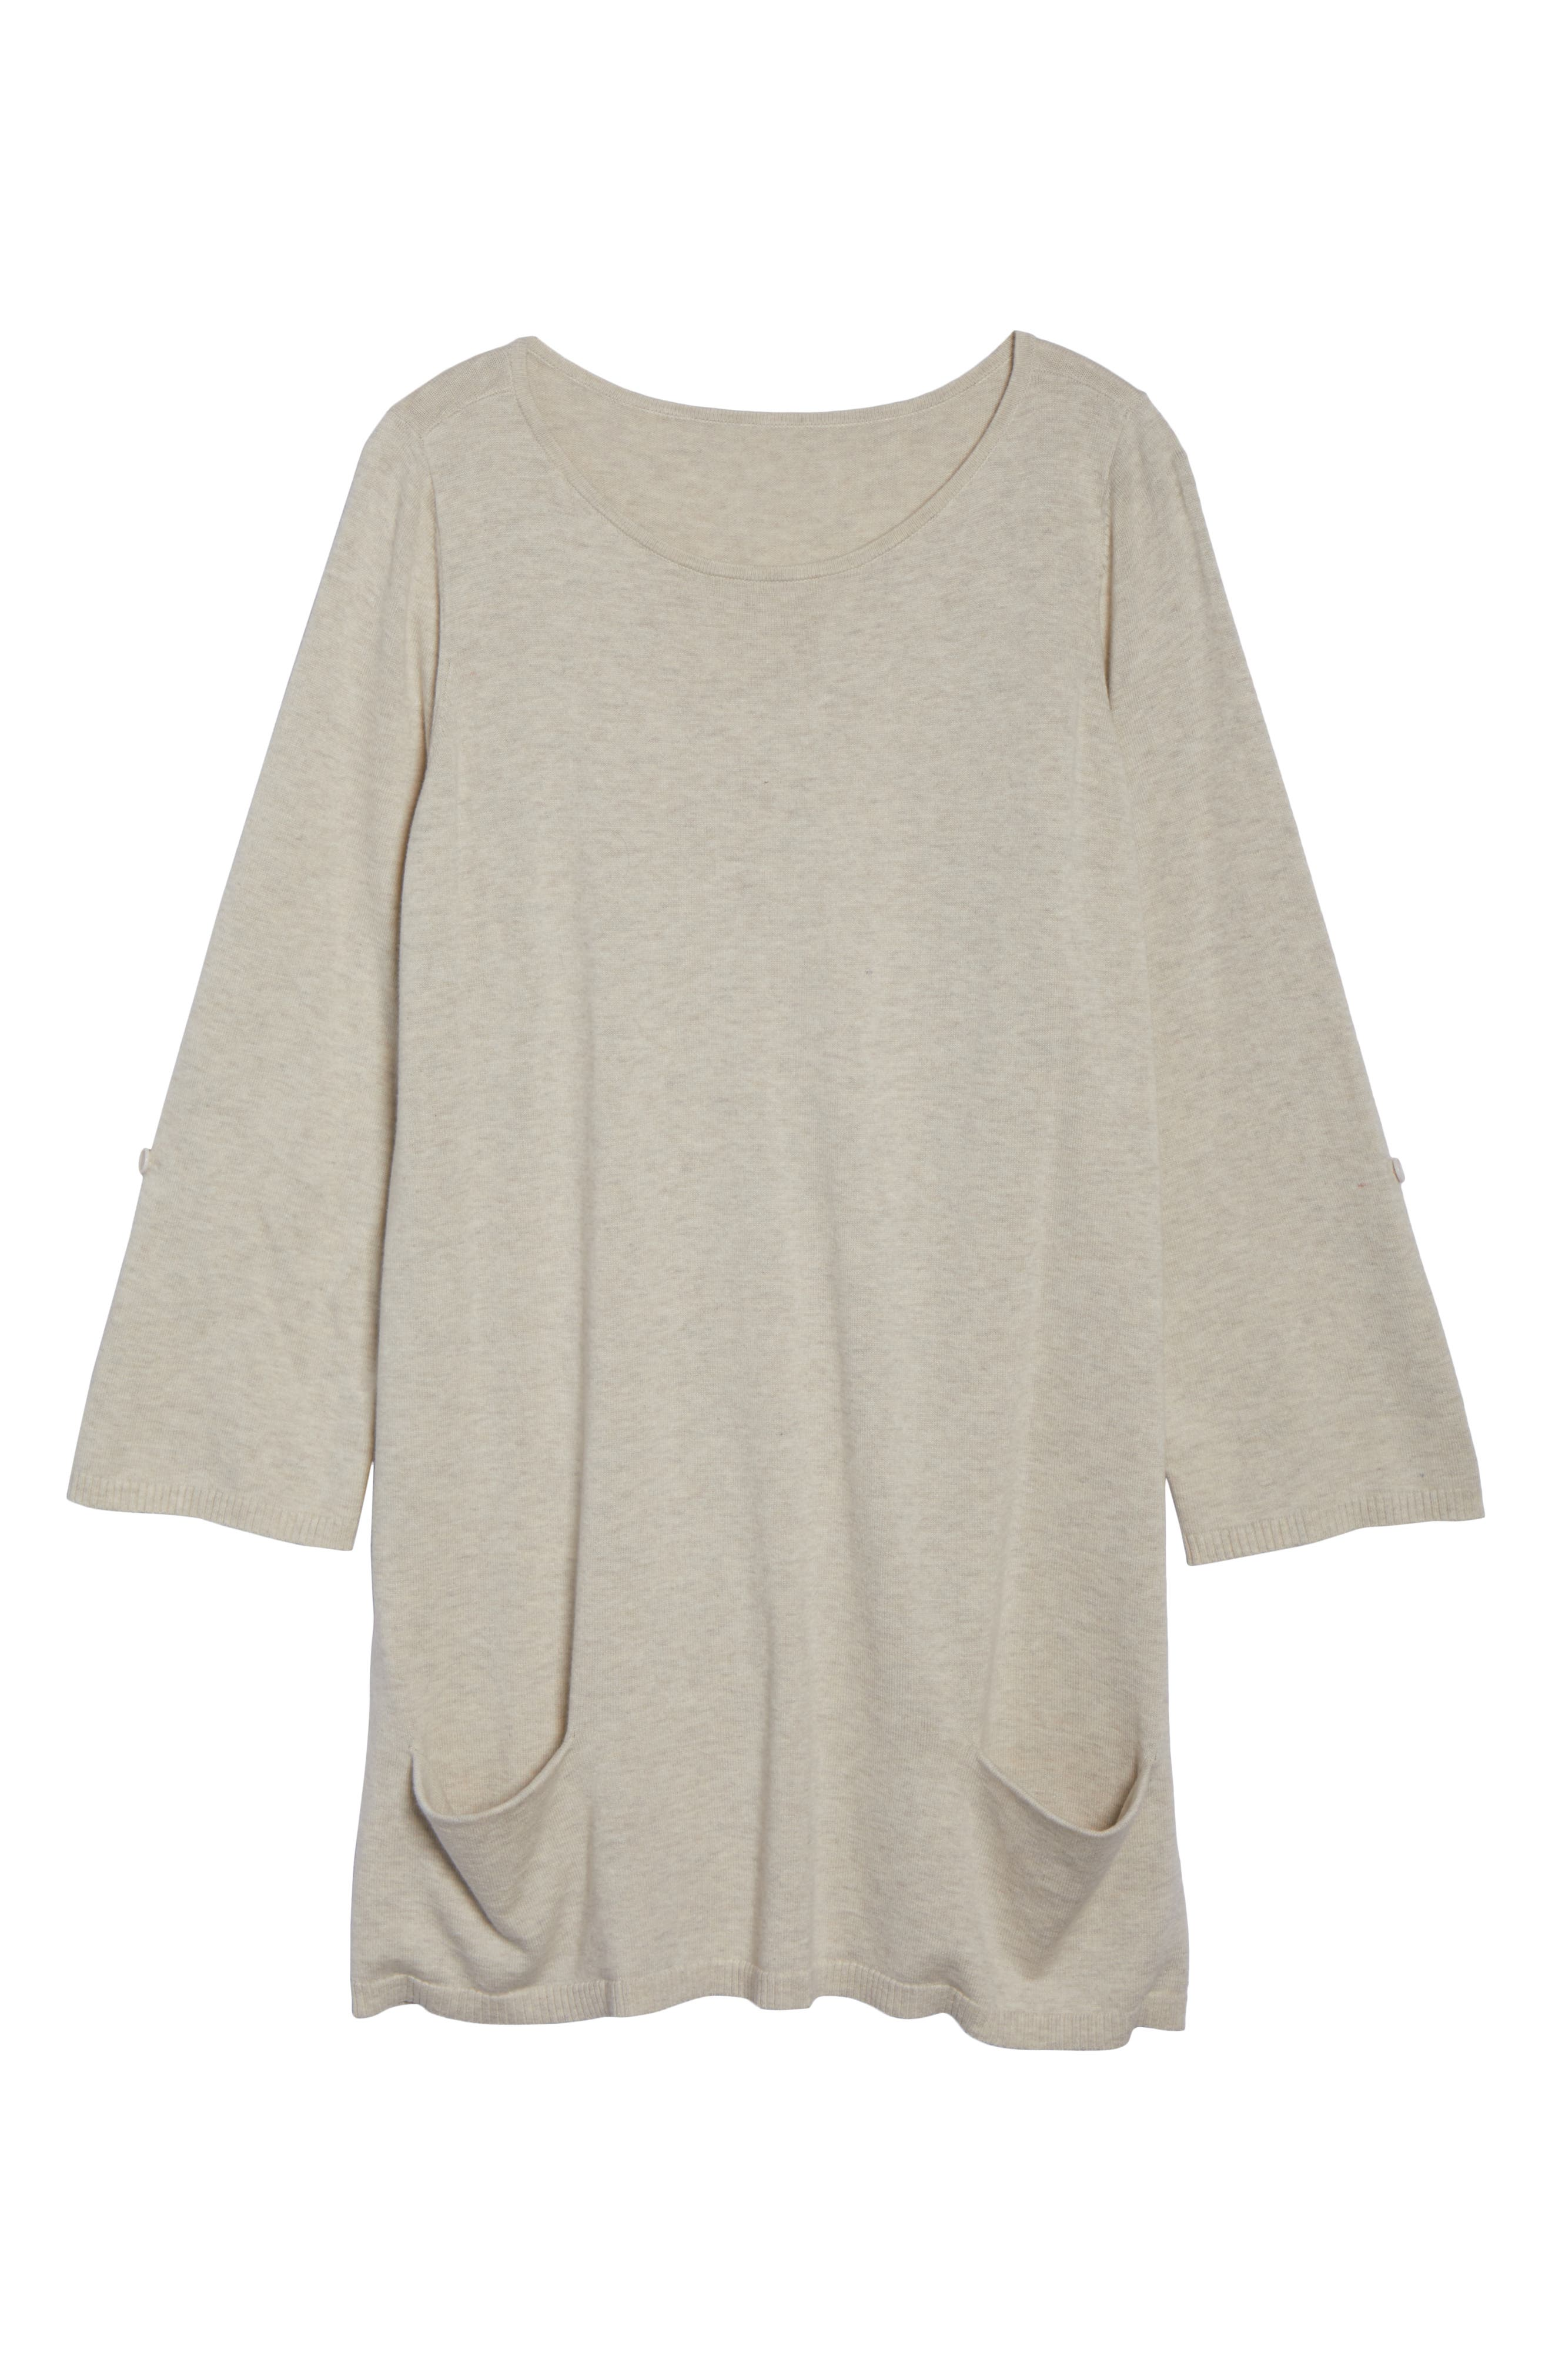 CASLON<SUP>®</SUP>,                             Roll Sleeve Tunic Sweater,                             Alternate thumbnail 6, color,                             BEIGE OATMEAL LIGHT HEATHER